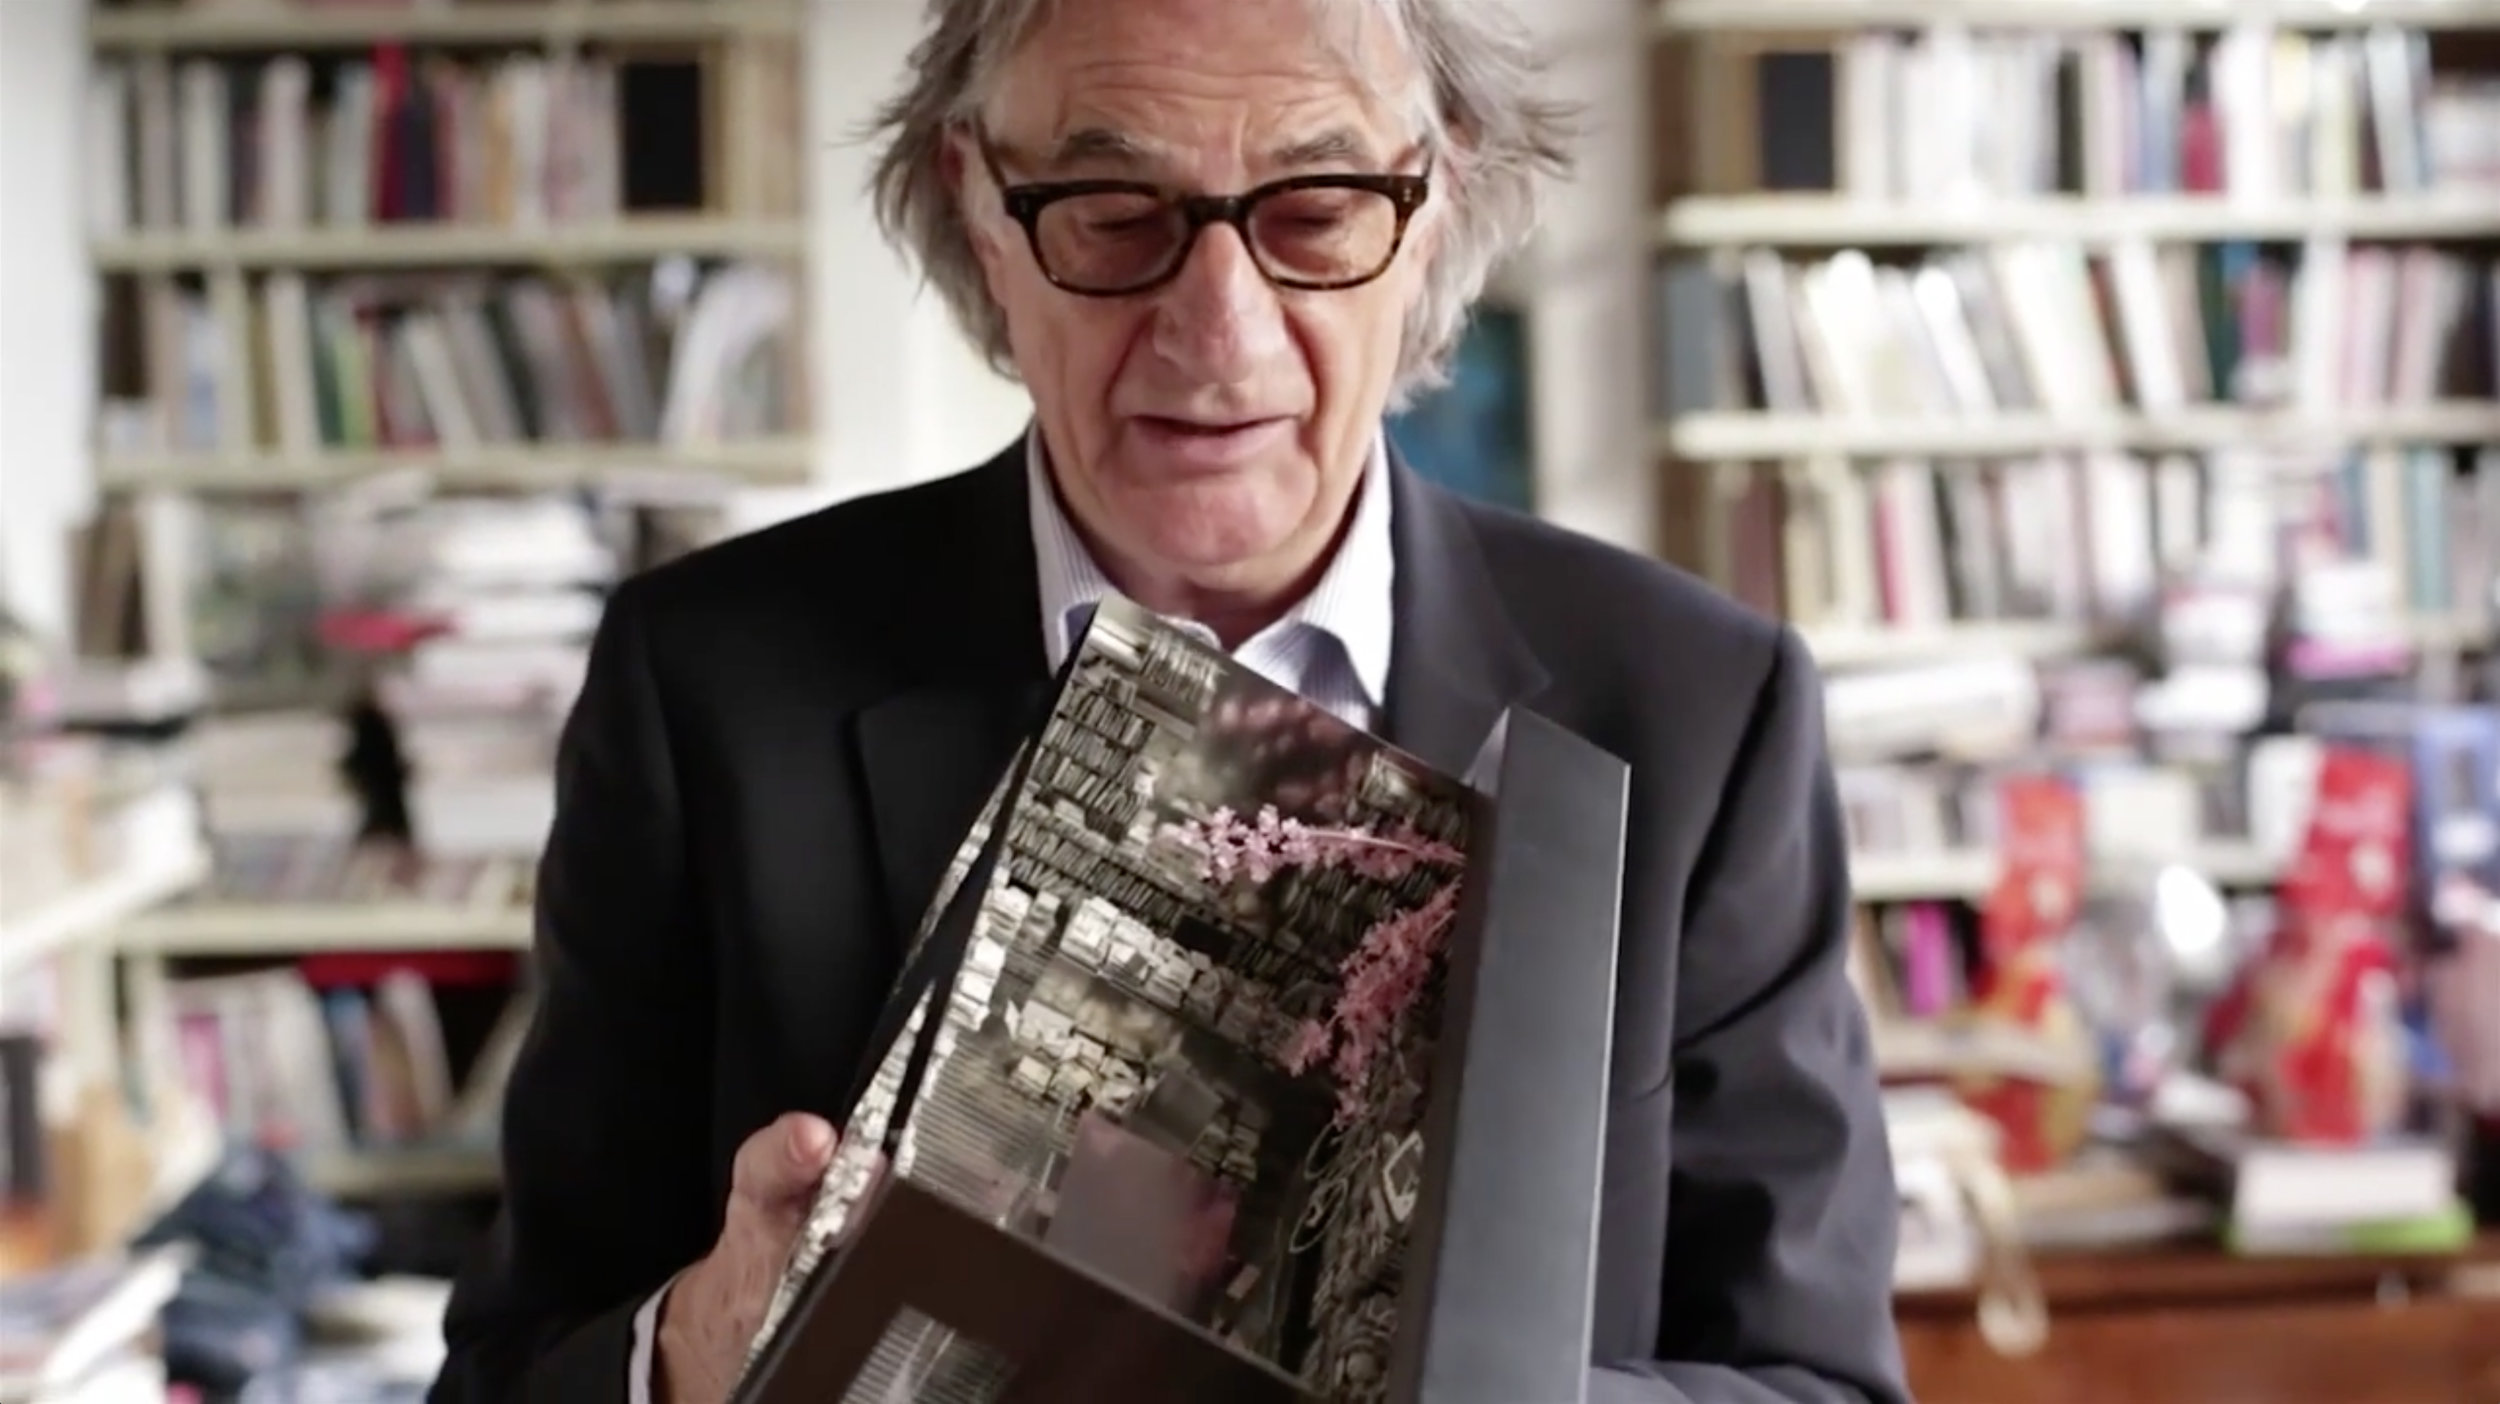 paul smith holding model.jpg